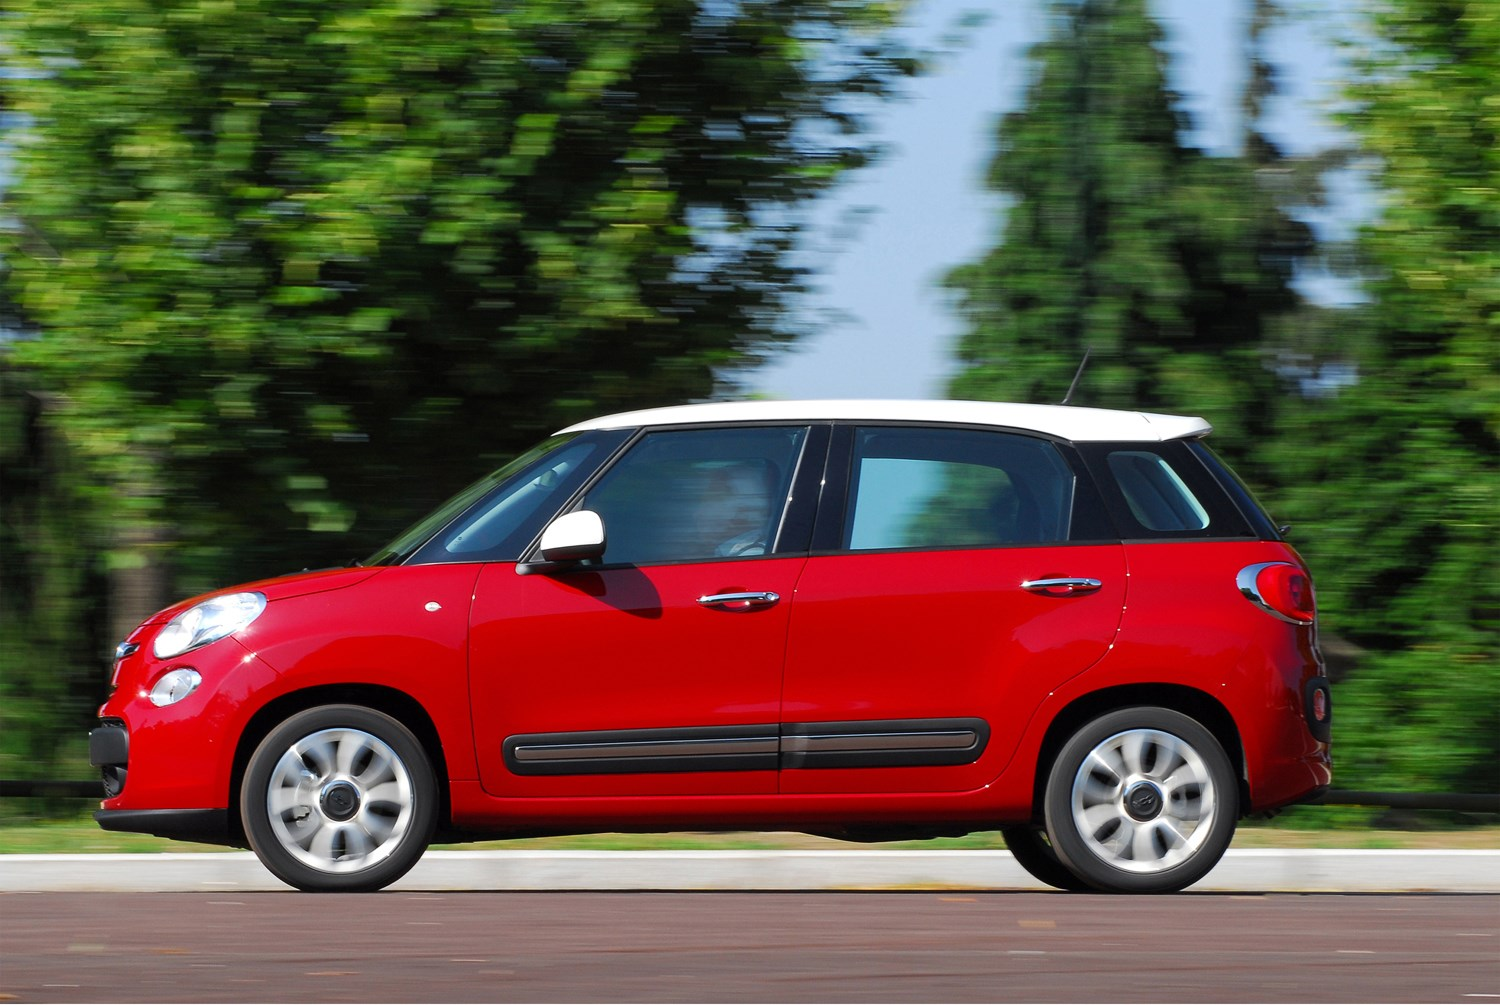 fiat 500l hatchback review 2012 parkers. Black Bedroom Furniture Sets. Home Design Ideas